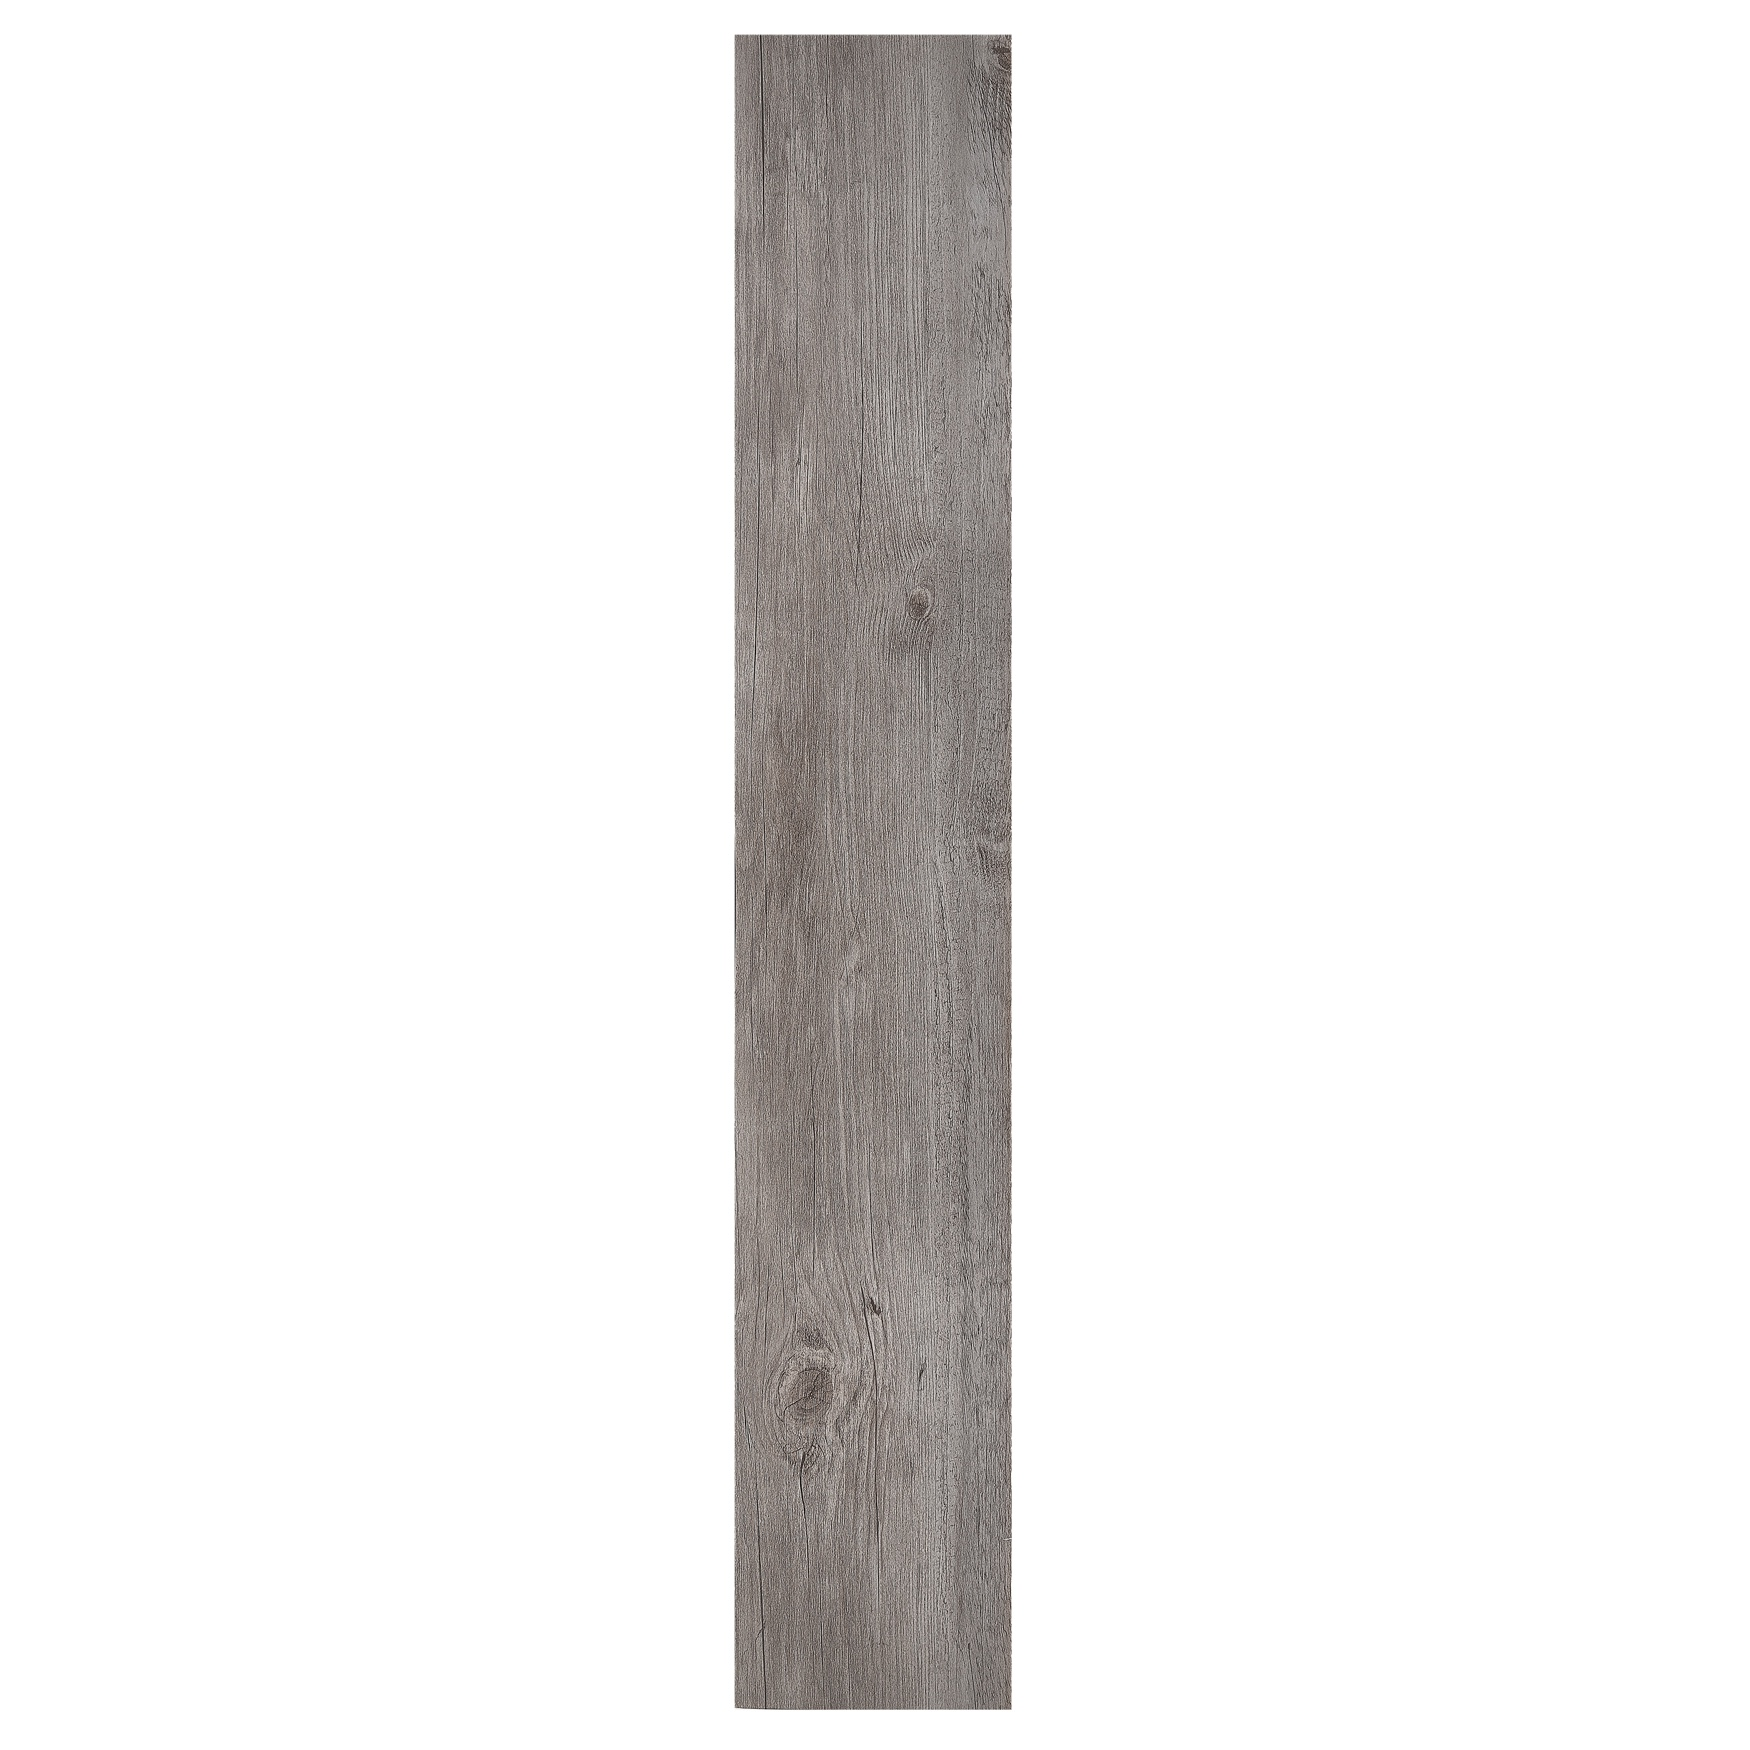 "Sterling 6"" x 36"" 2.0mm Self Adhesive Vinyl Floor Planks, LIGHT GREY OAK"